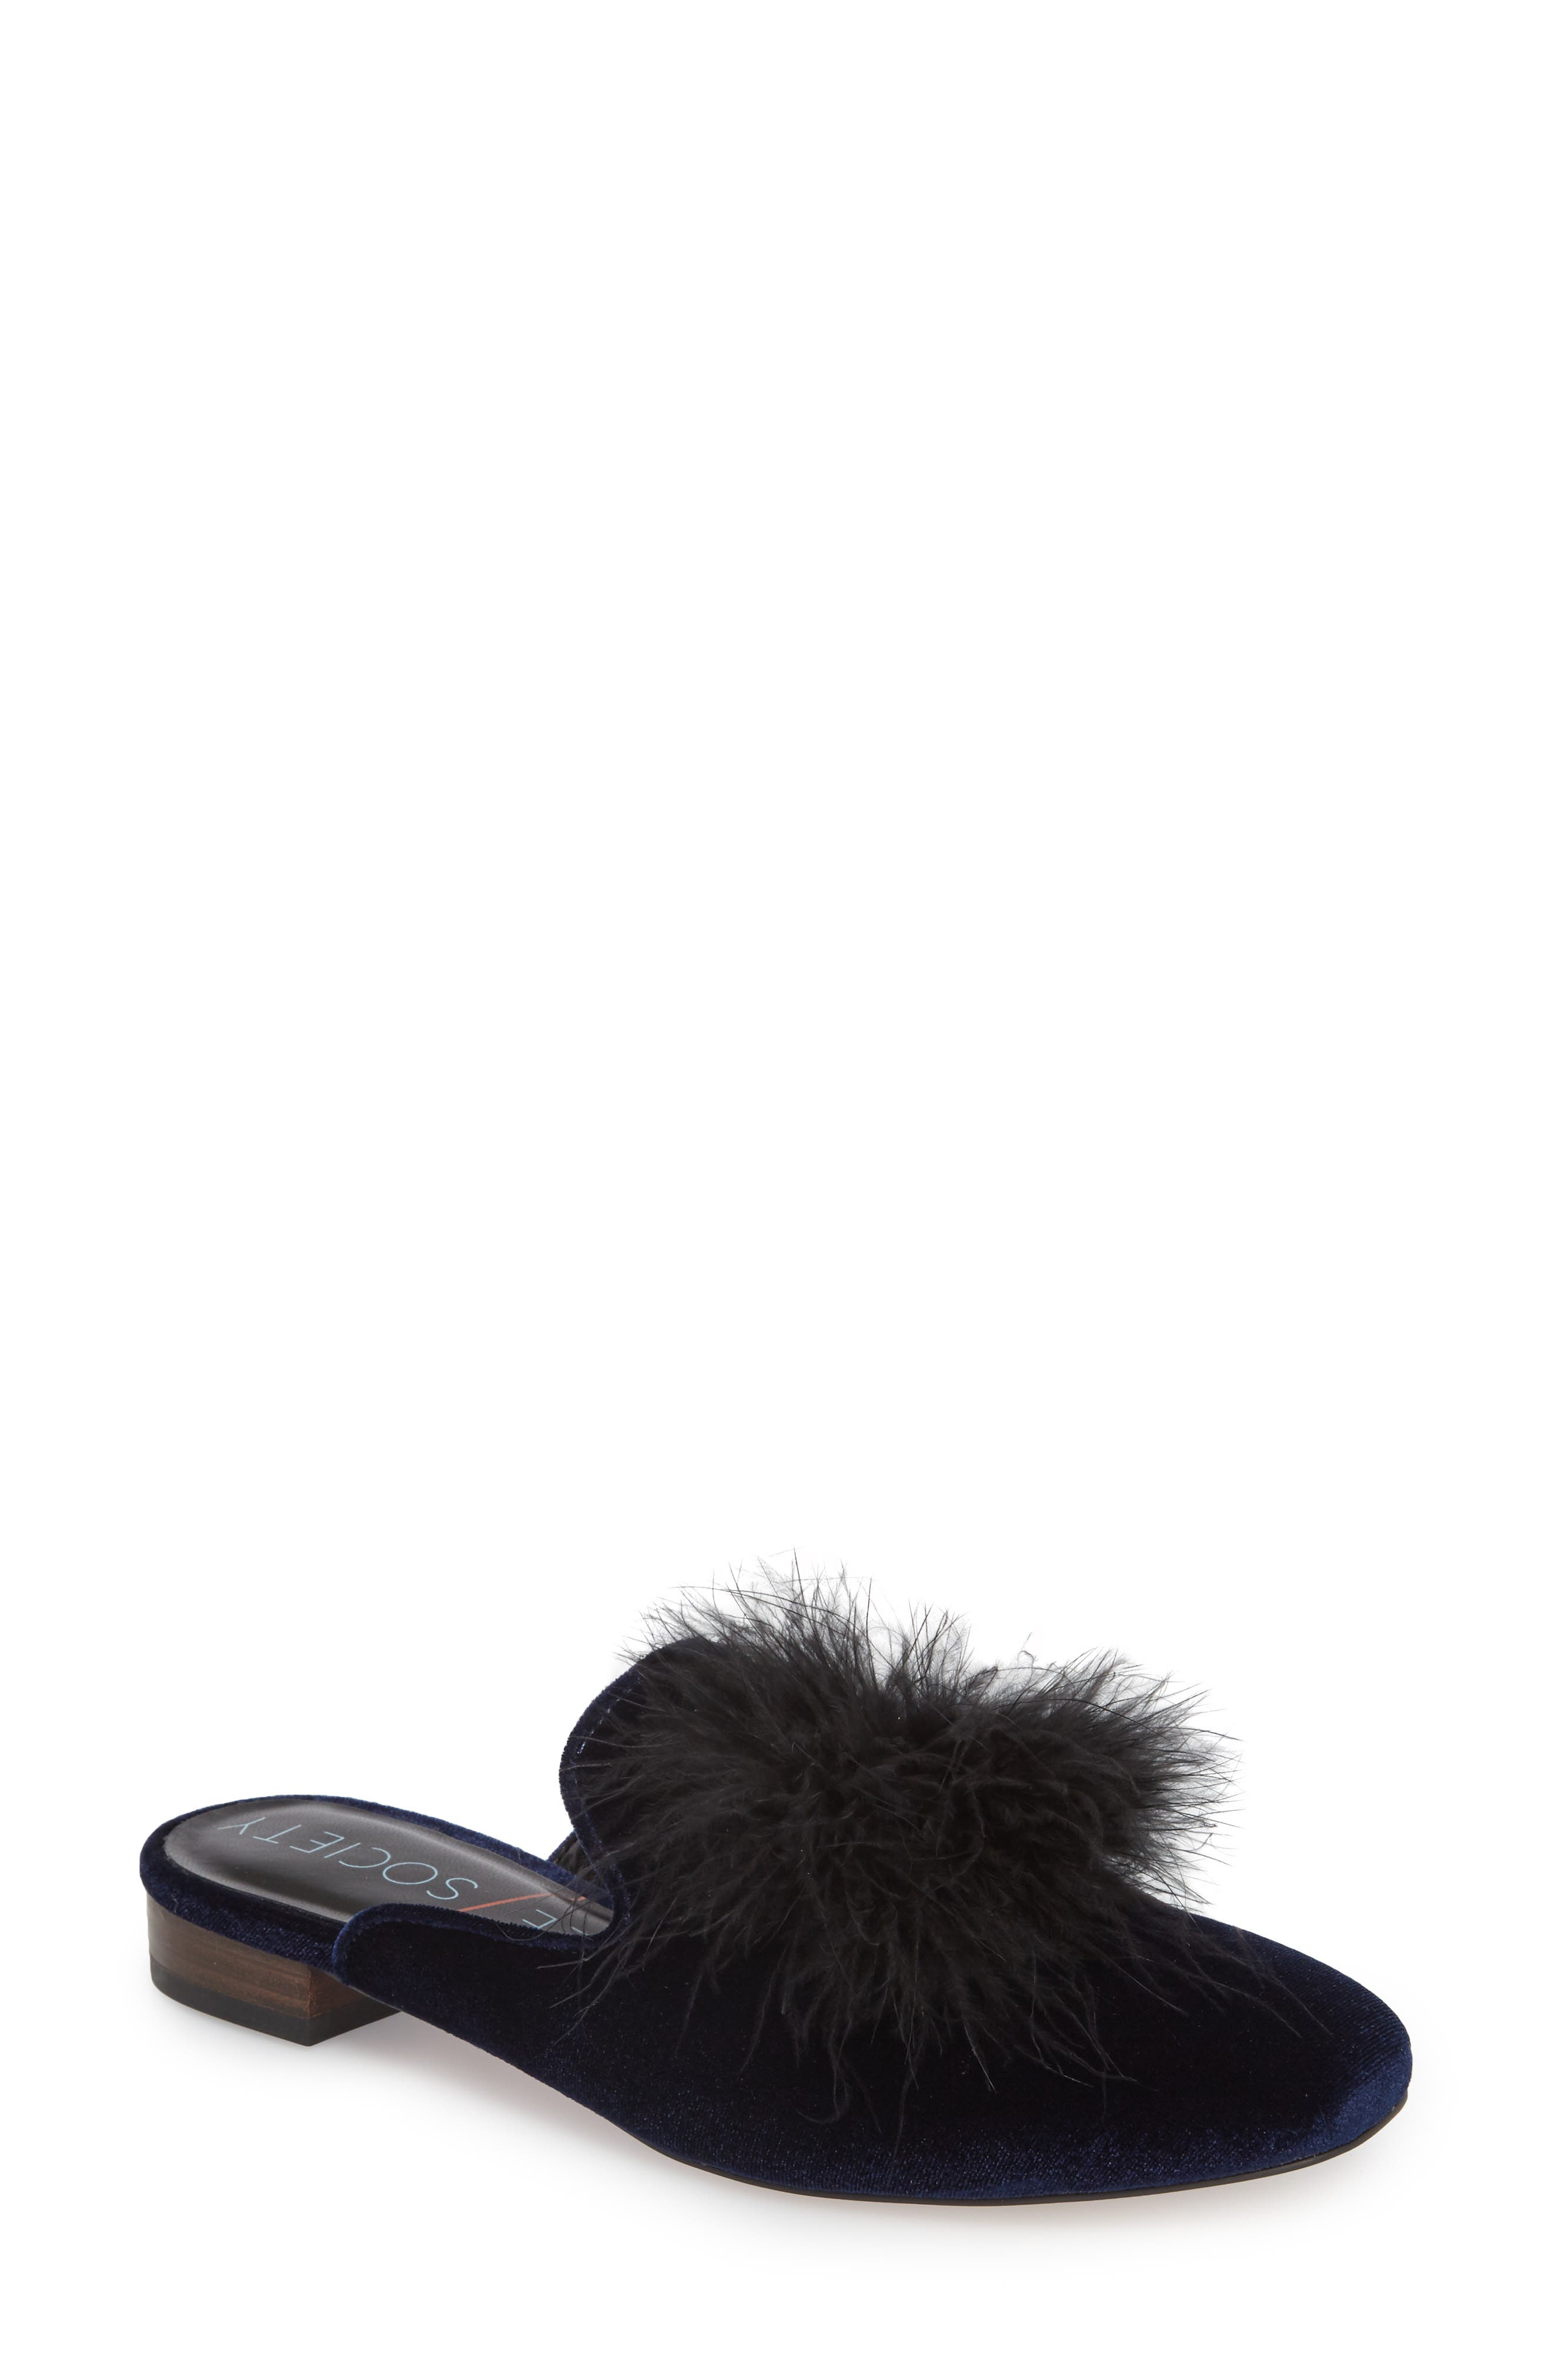 Cleona Feather Pompom Mule,                             Main thumbnail 1, color,                             Navy